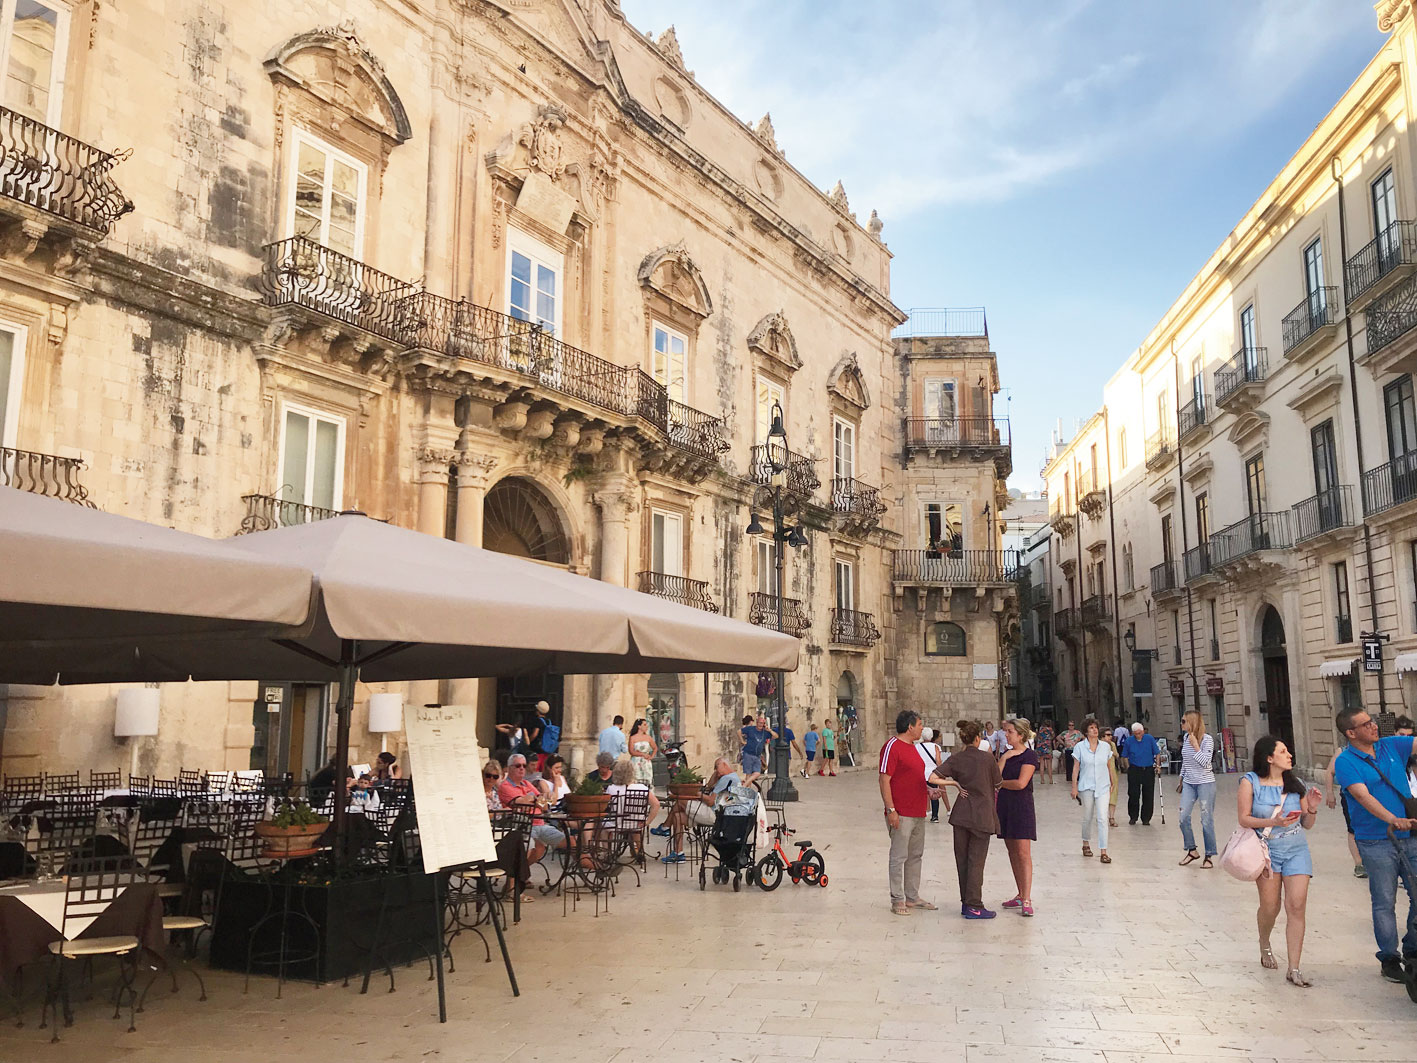 People watching at the central piazza at Siracusa